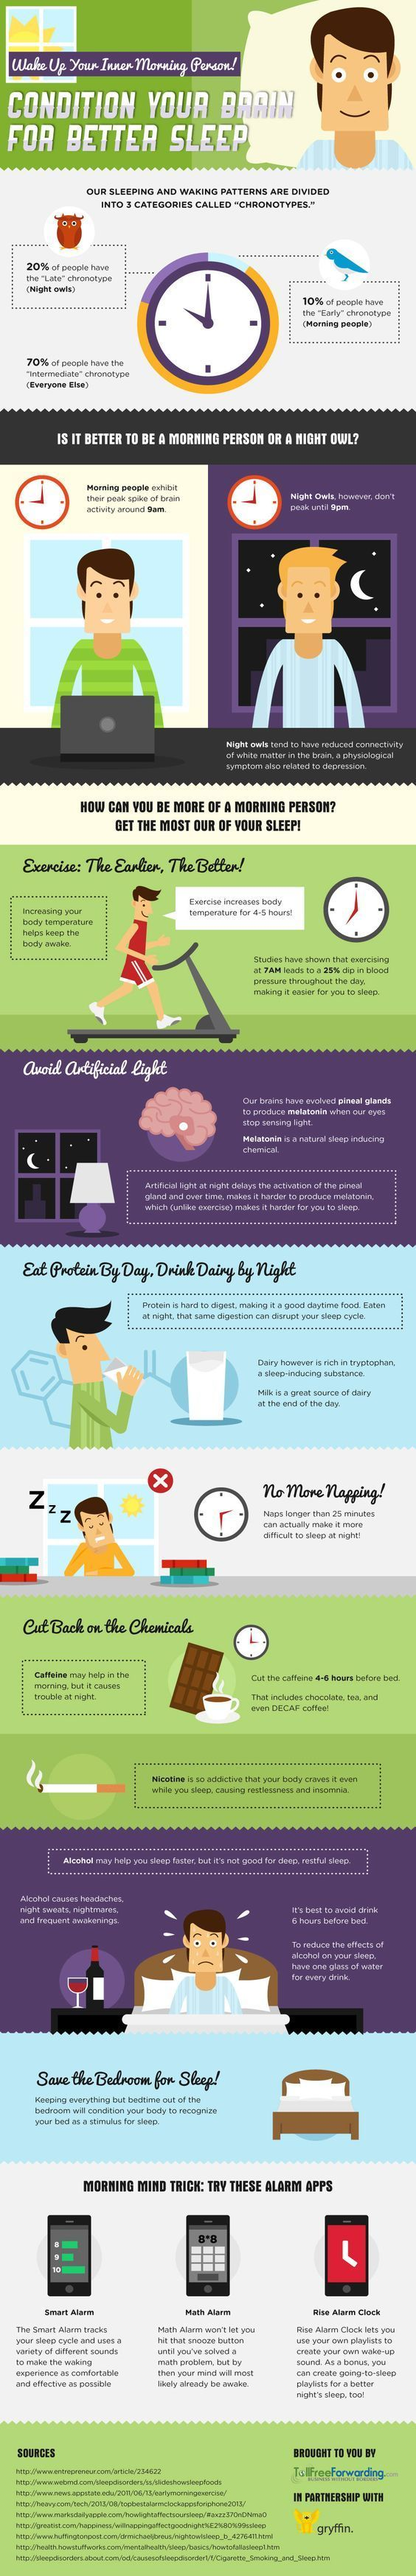 10 Yoga, Meditative And Restorative Techniques Infographic To Improve Your Sleep Quality